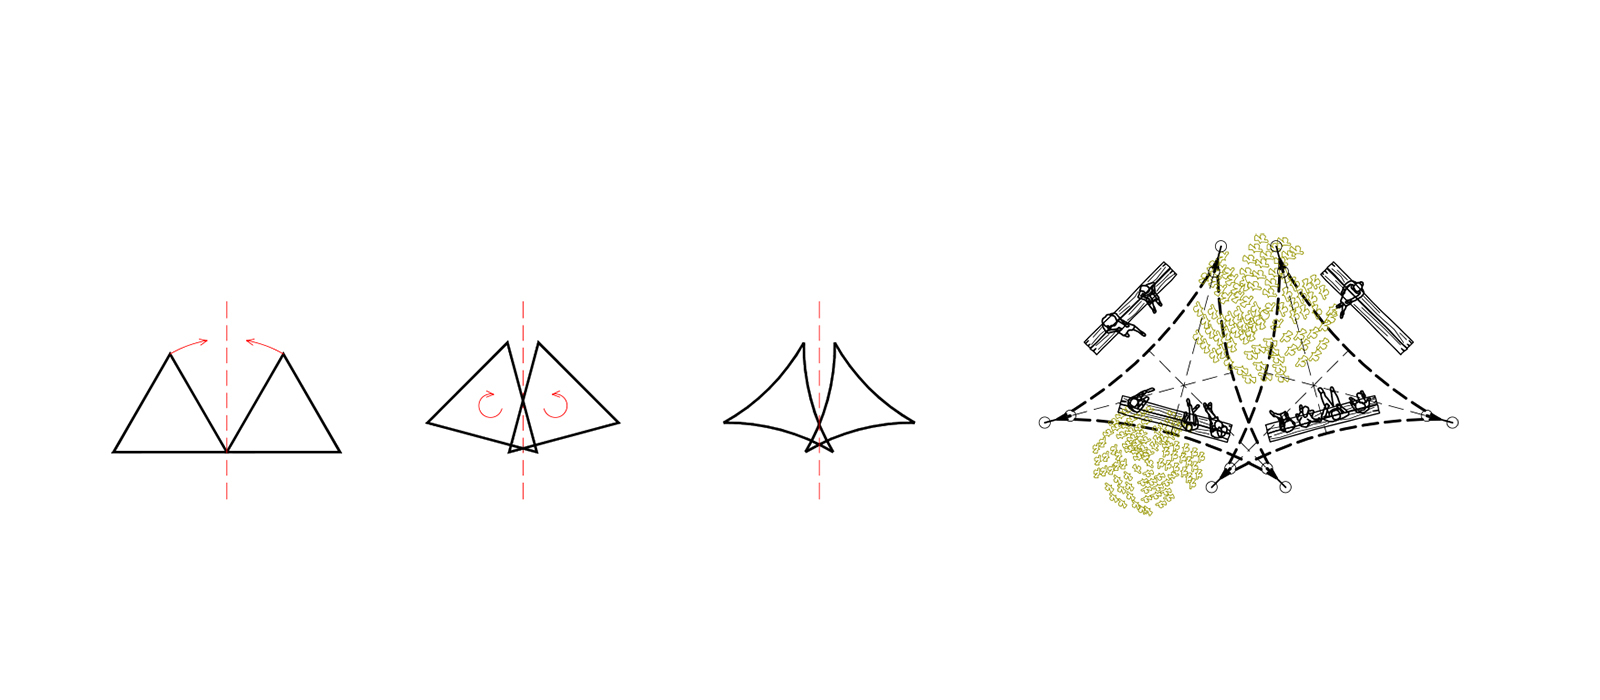 gyd-architecture   exploring structural canopies